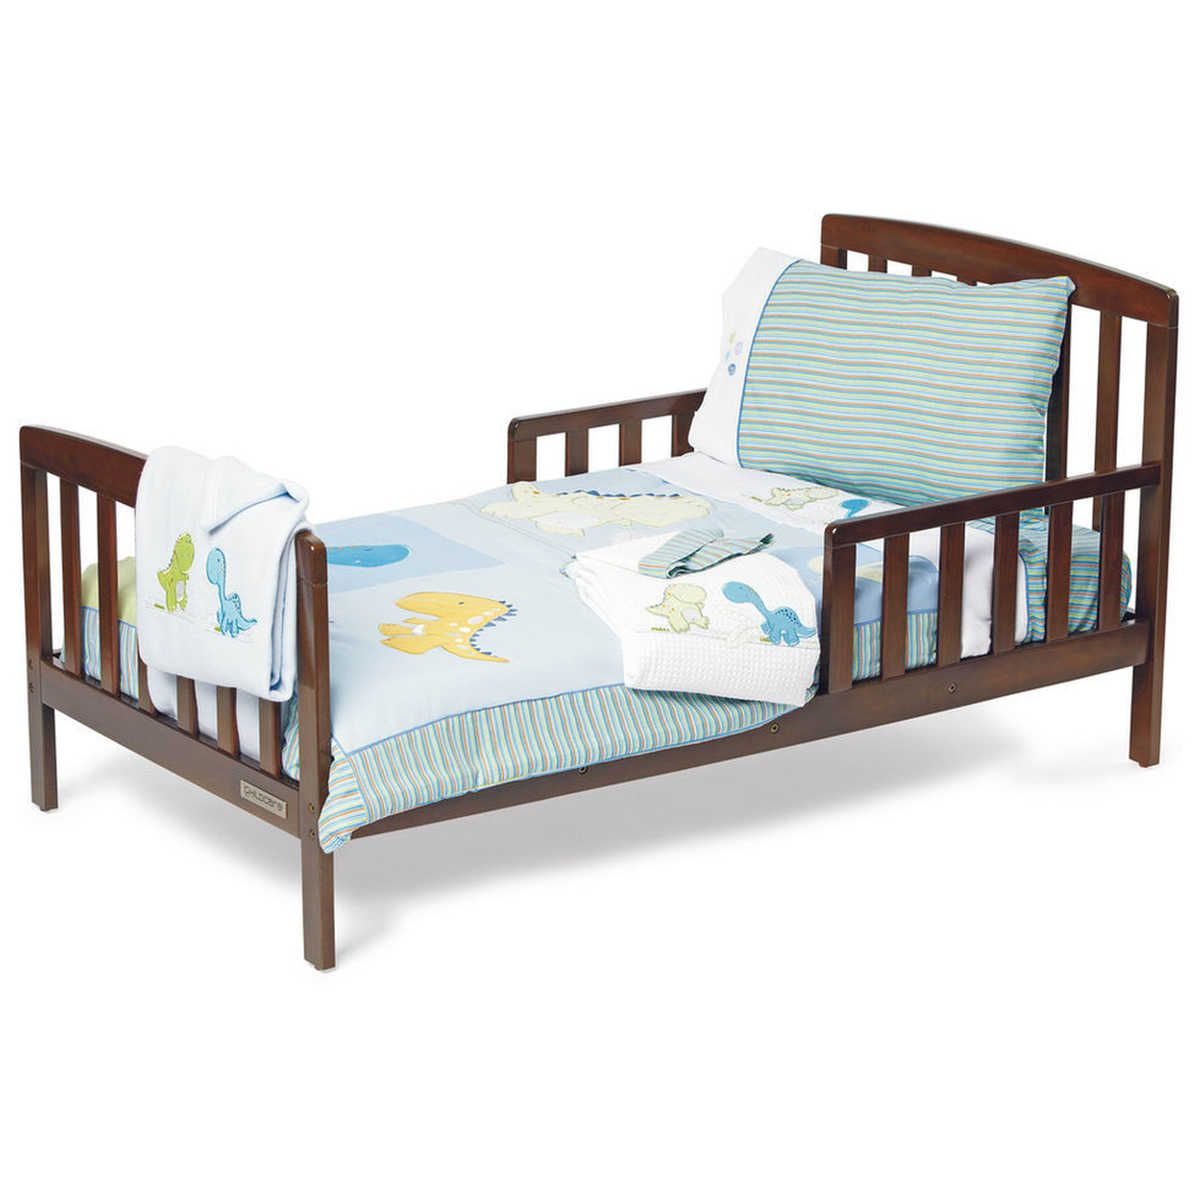 2018 Beds For Toddlers Cheap